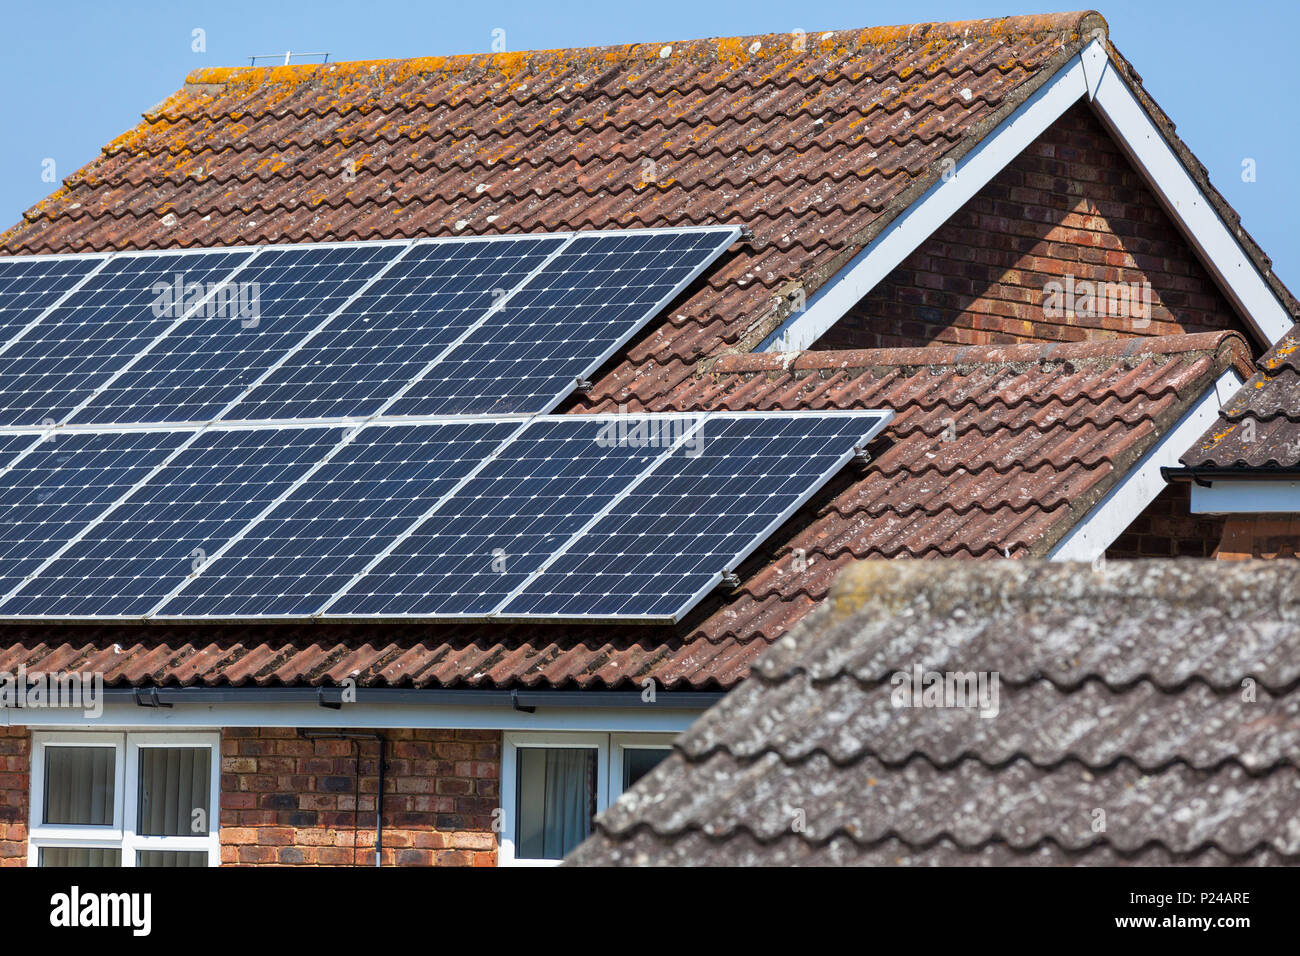 Solar panels on a detached house, uk - Stock Image